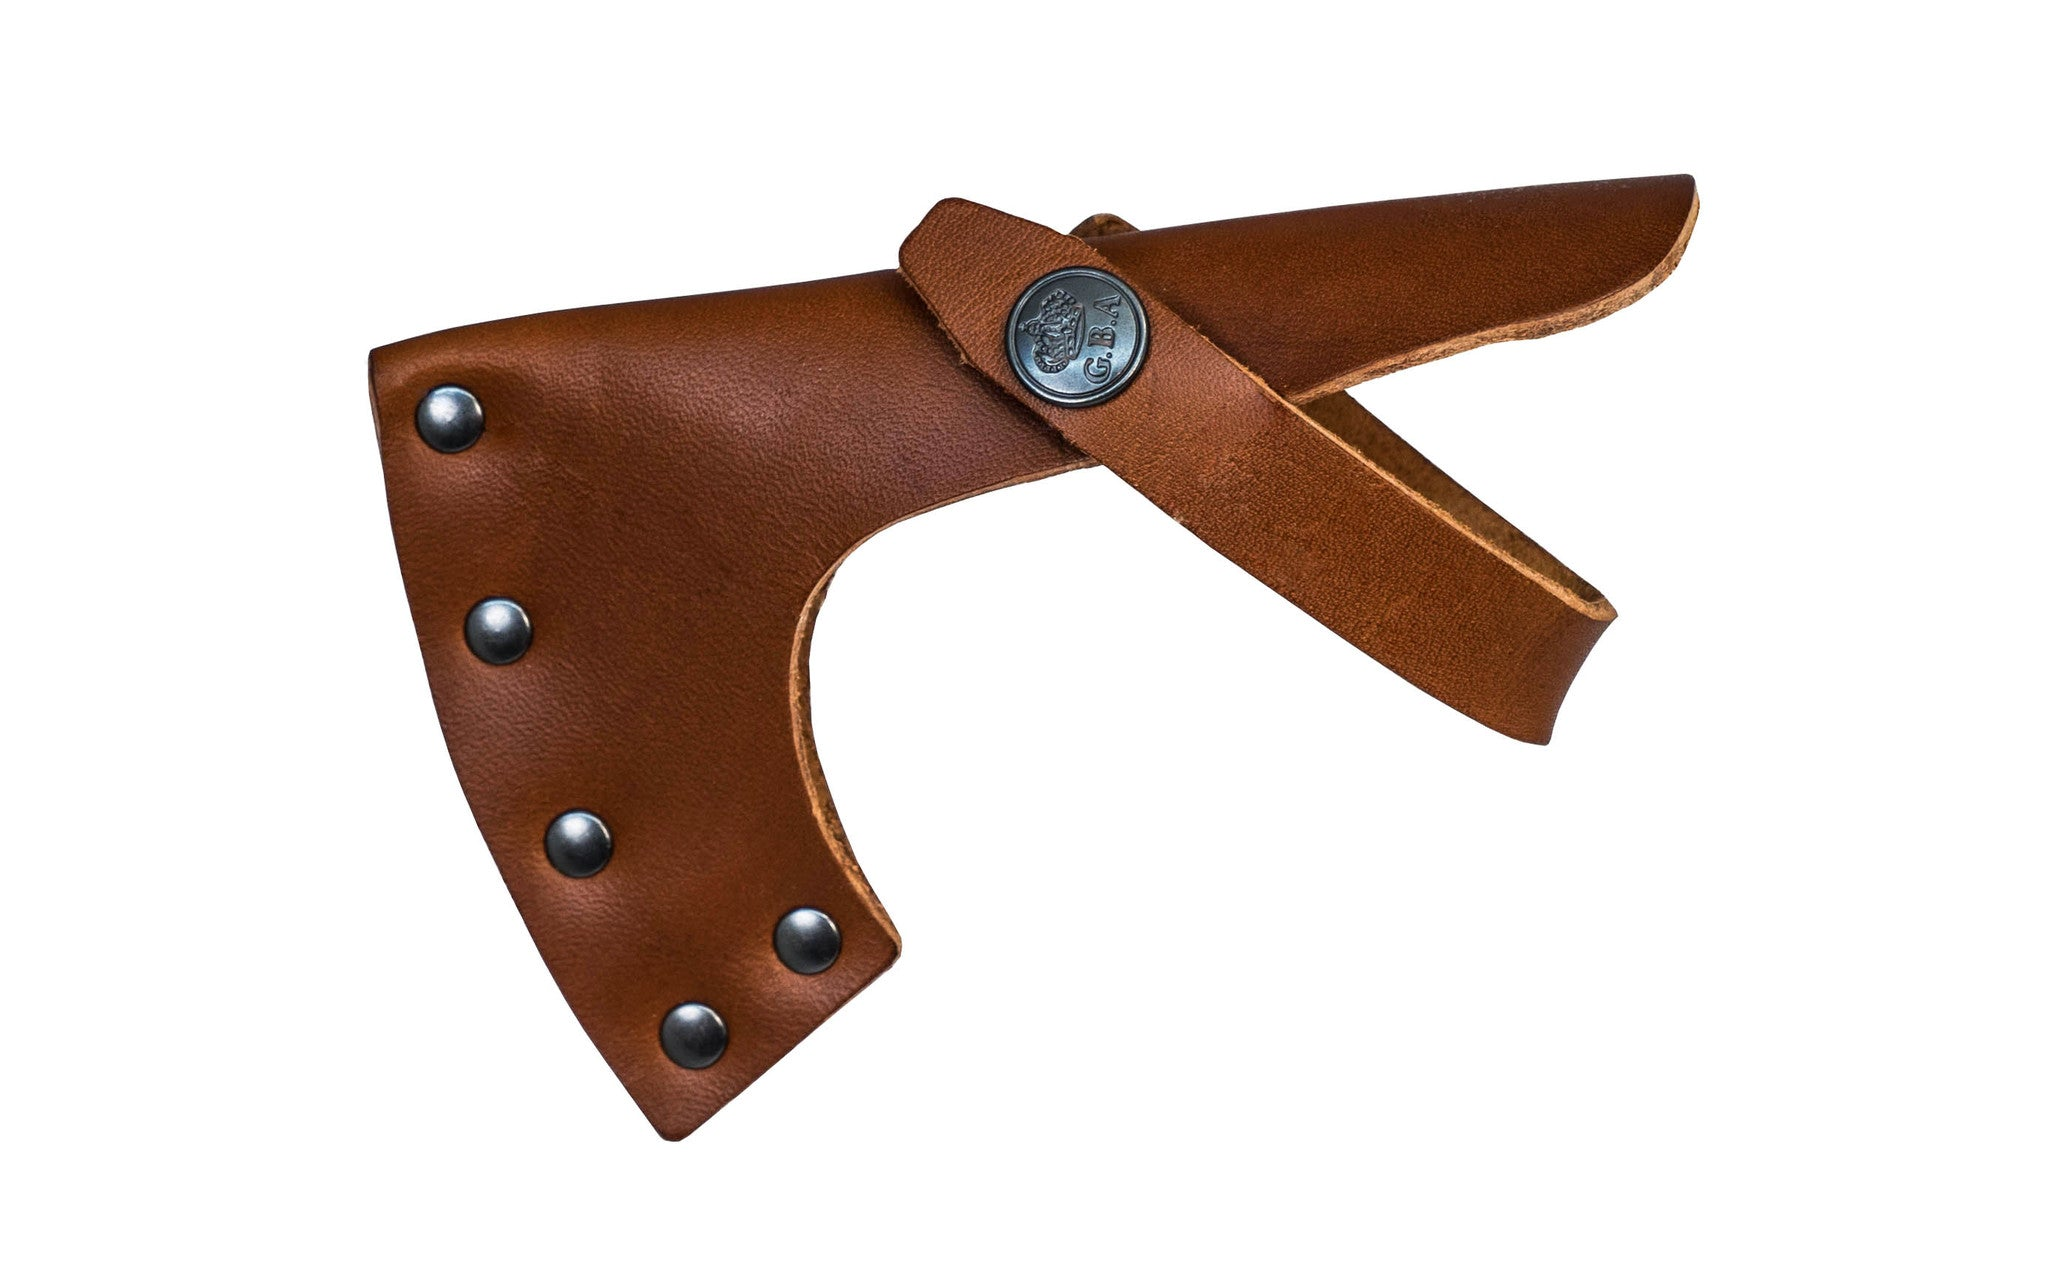 Leather Sheath for Gransfors Bruk Hunter's Axe No. 418